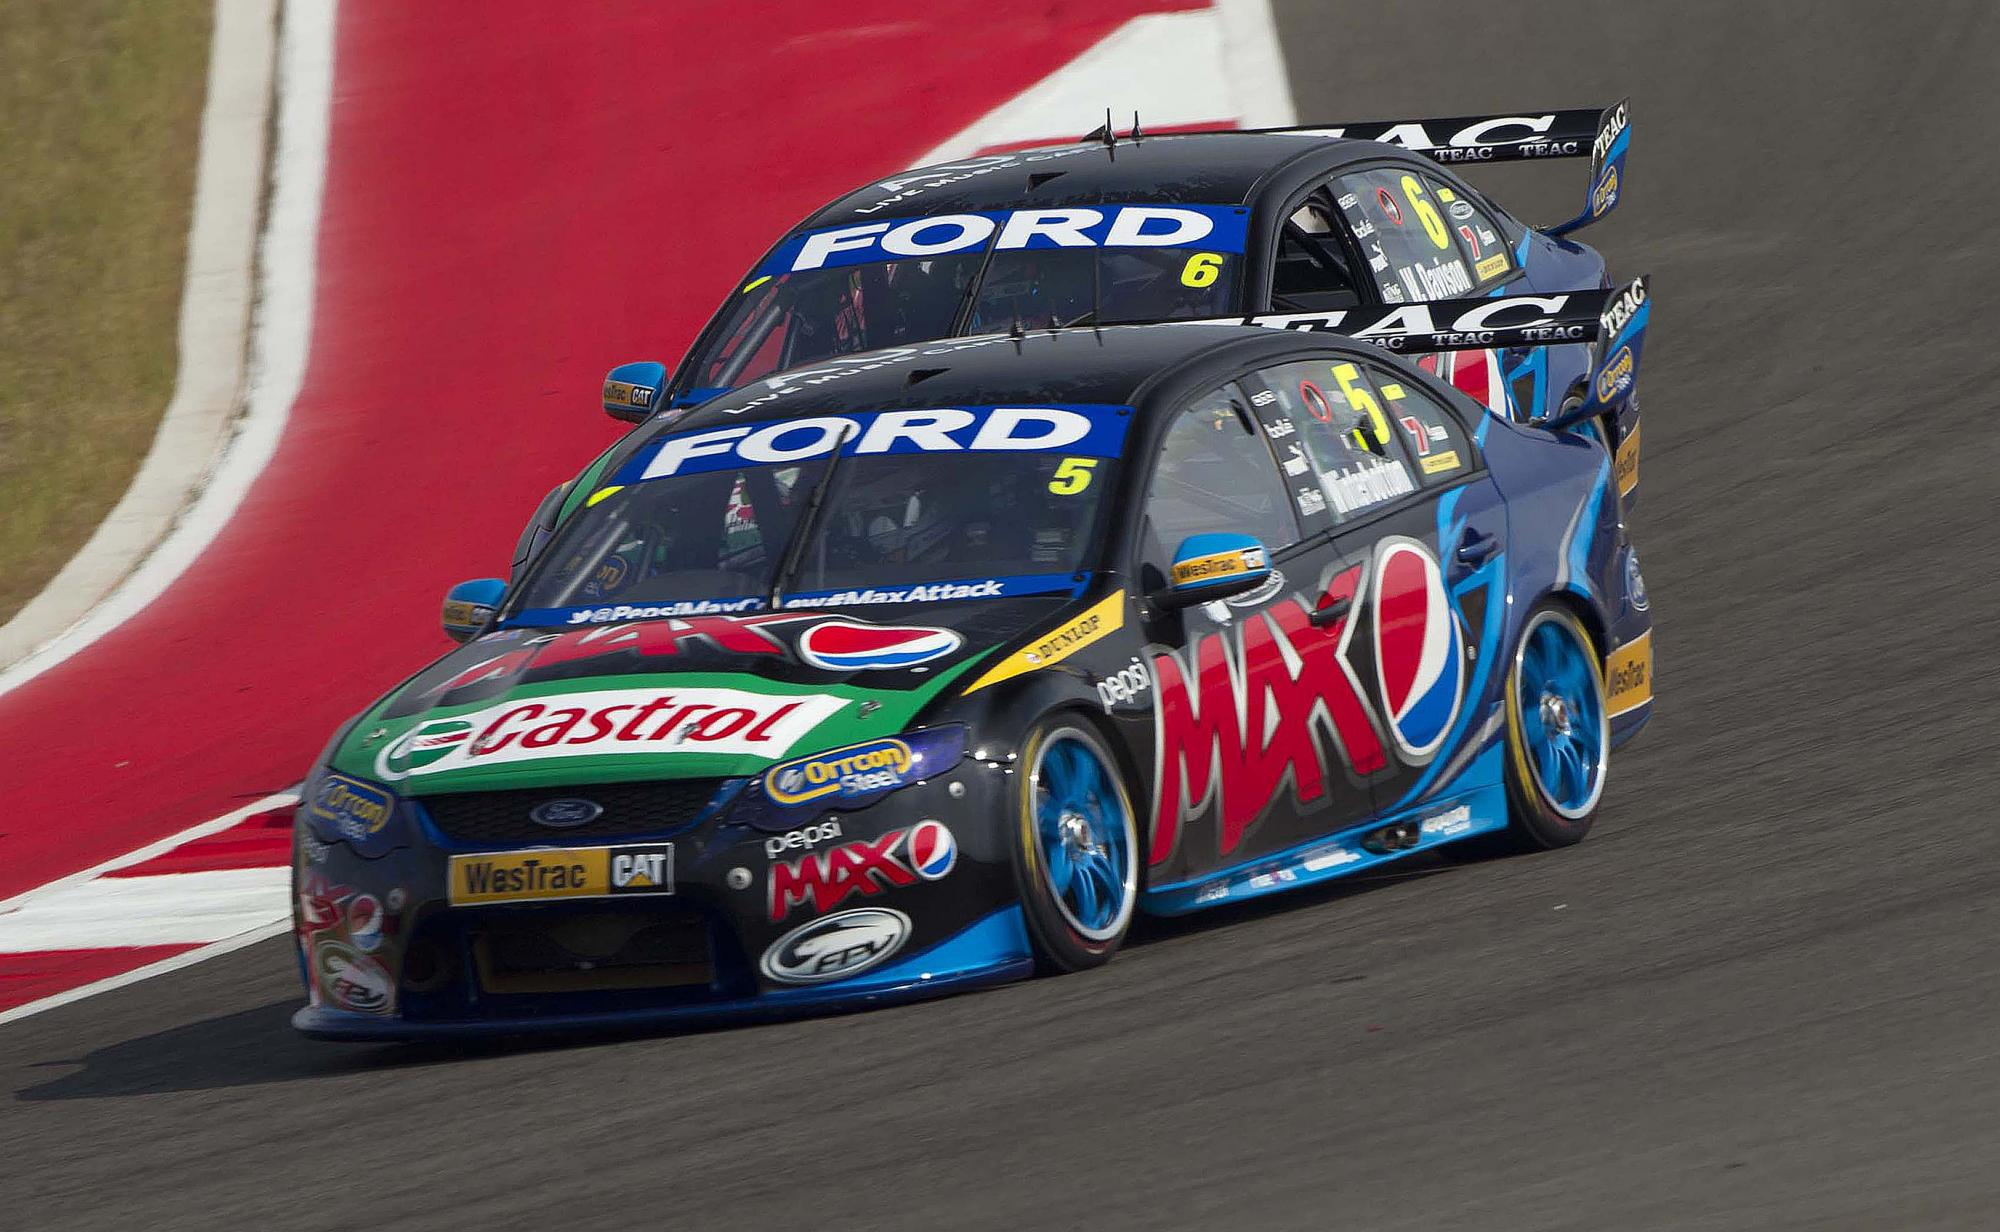 Aussie V8 Supercars race racing v 8 d wallpaper 2000x1232